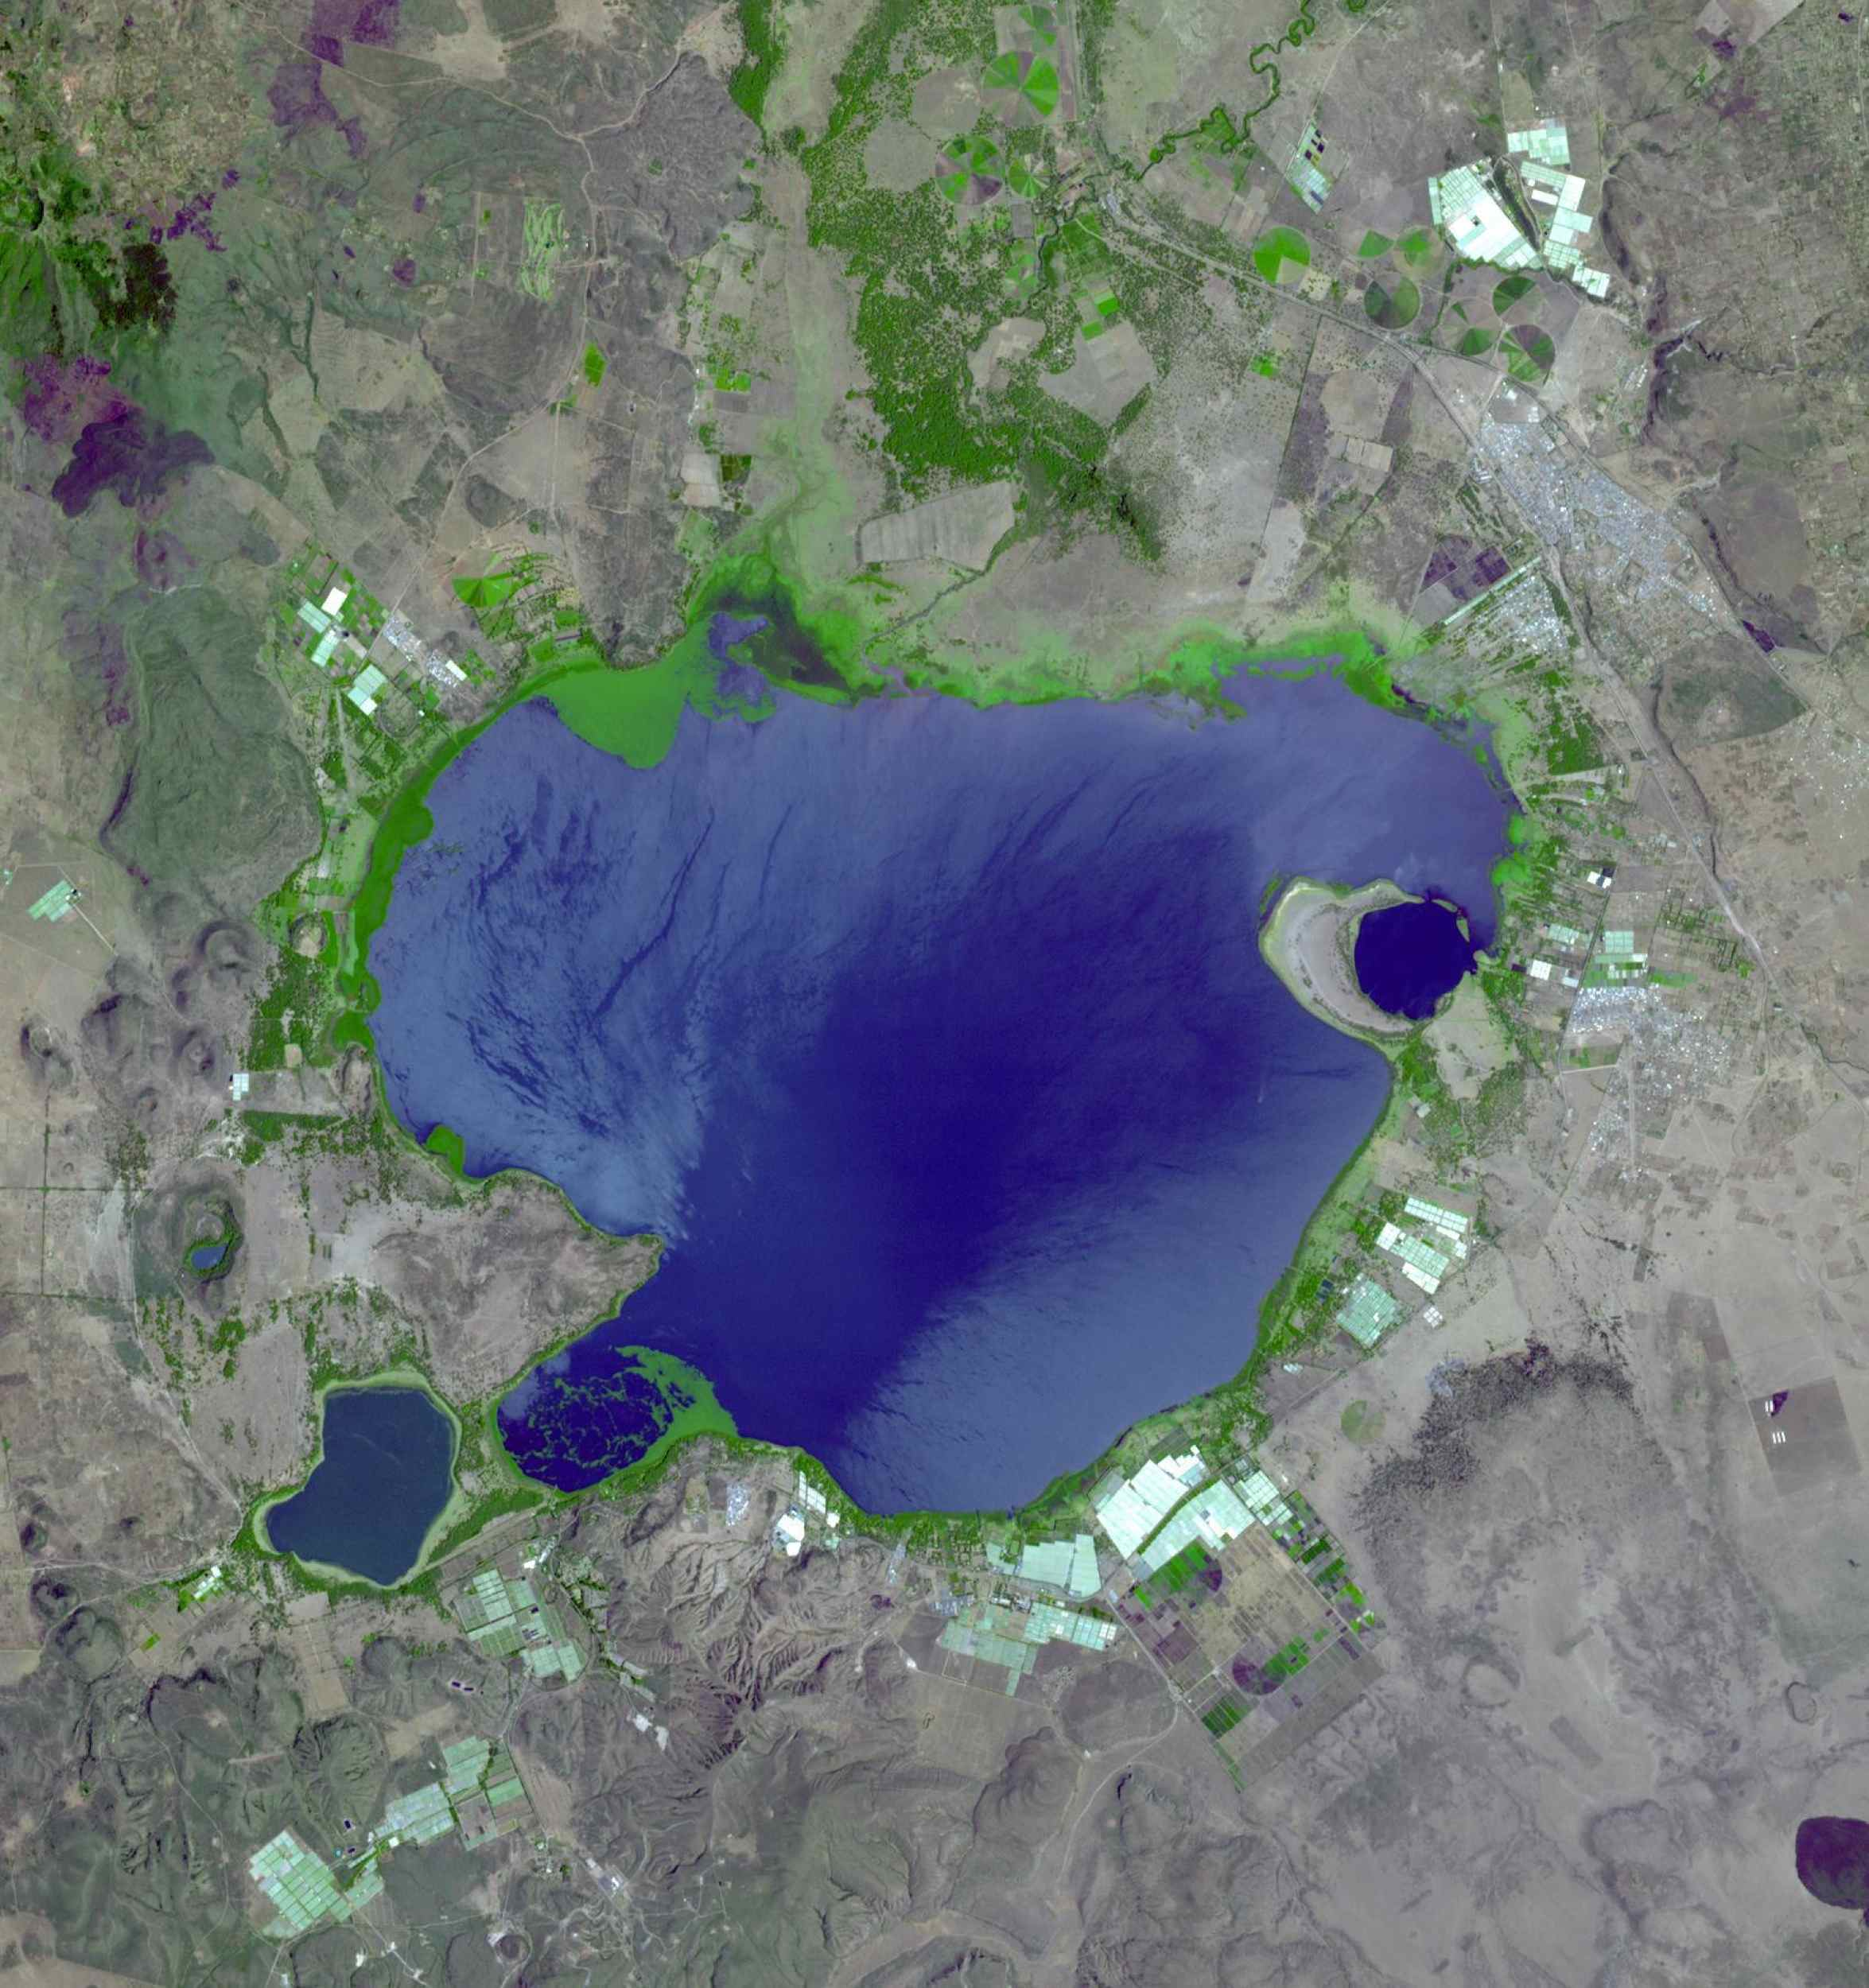 If you live in Europe and buy roses, the chance is good that they were grown in Kenya -- specifically, in one of the colossal greenhouses that blot out the once wild shores of Lake Naivasha, 90km north-west of Nairobi. Image from NASA's Terra satellite.